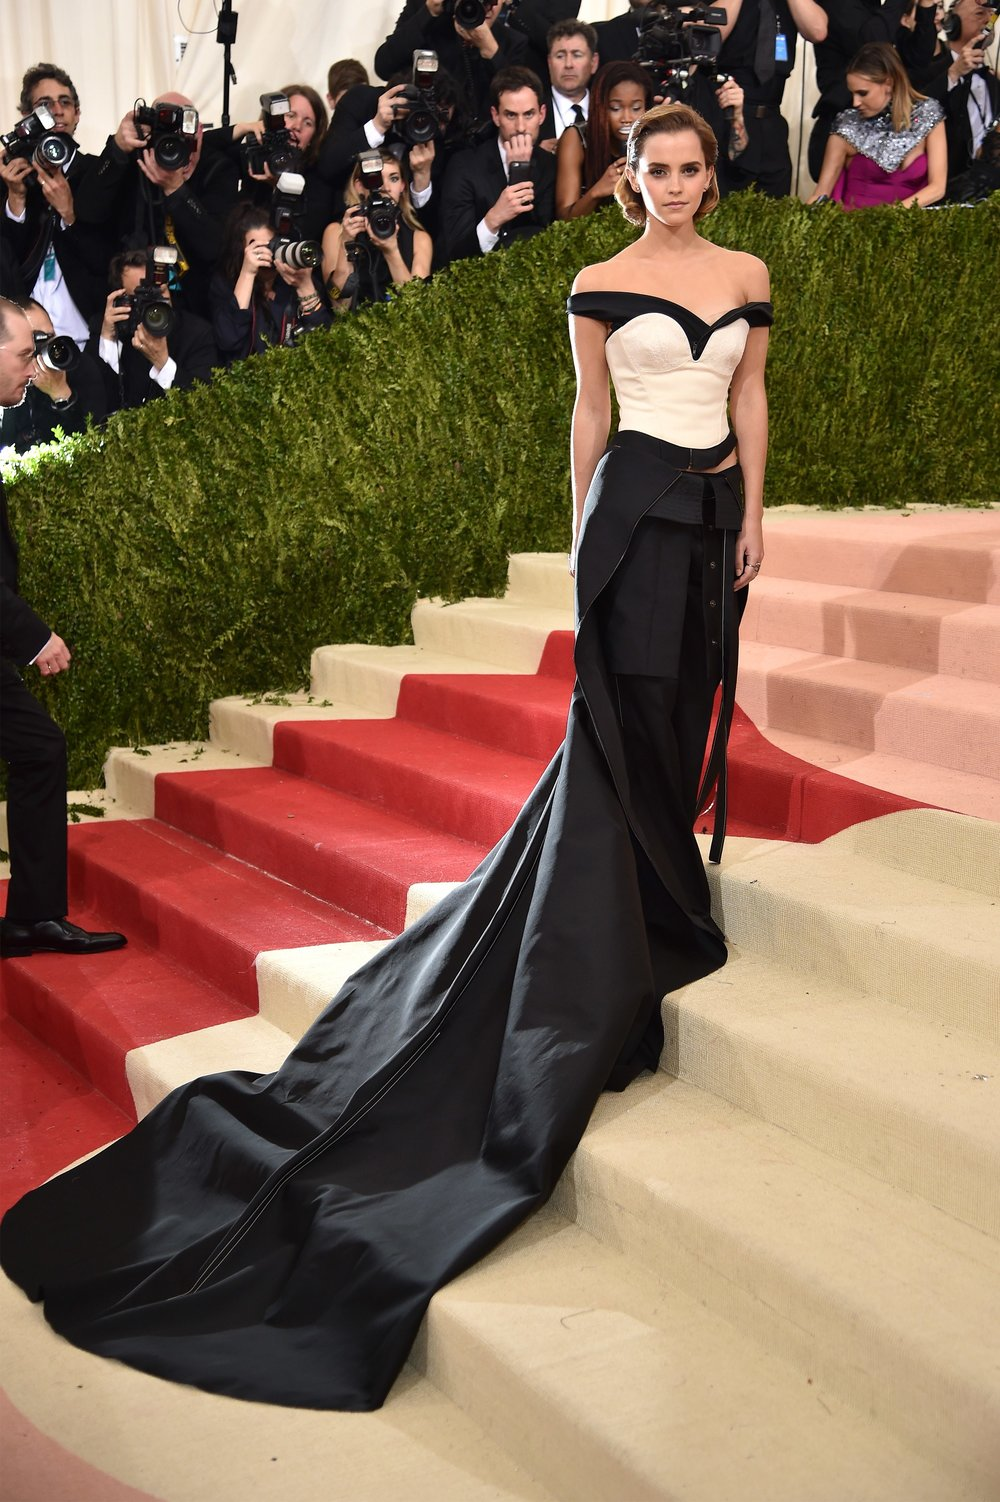 Emma Watson at the 2016 Met Gala in a Calvin Klein dress made almost entirely of recycled bottles. With sustainability in mind, Watson has long been a fan of eco-friendly clothing.